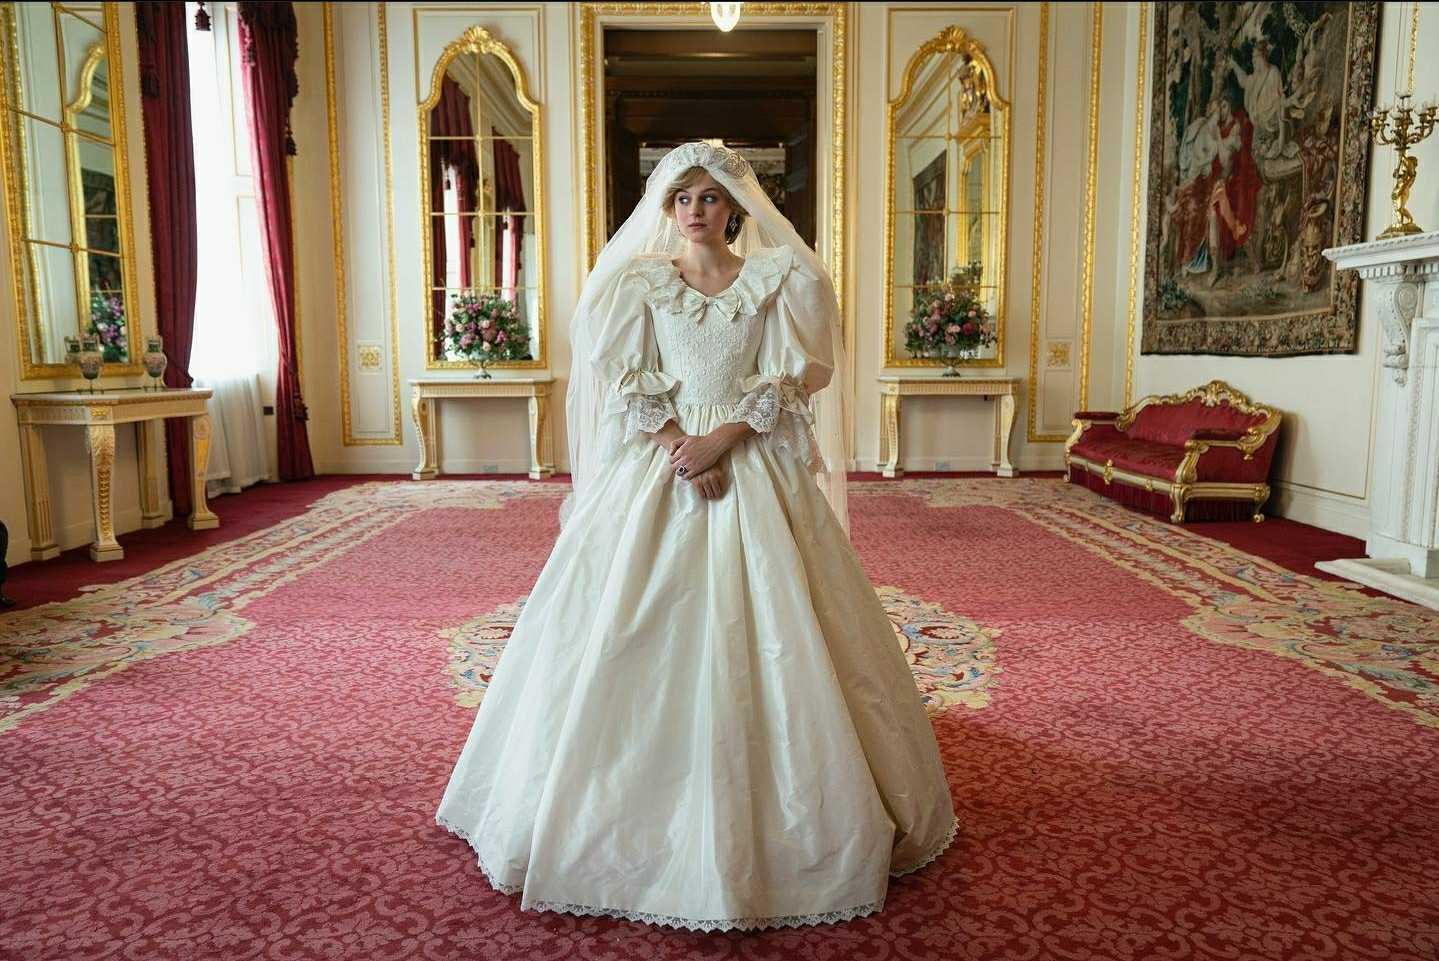 emma corrin on the set of the crown wearing a replica of princess diana's wedding dress